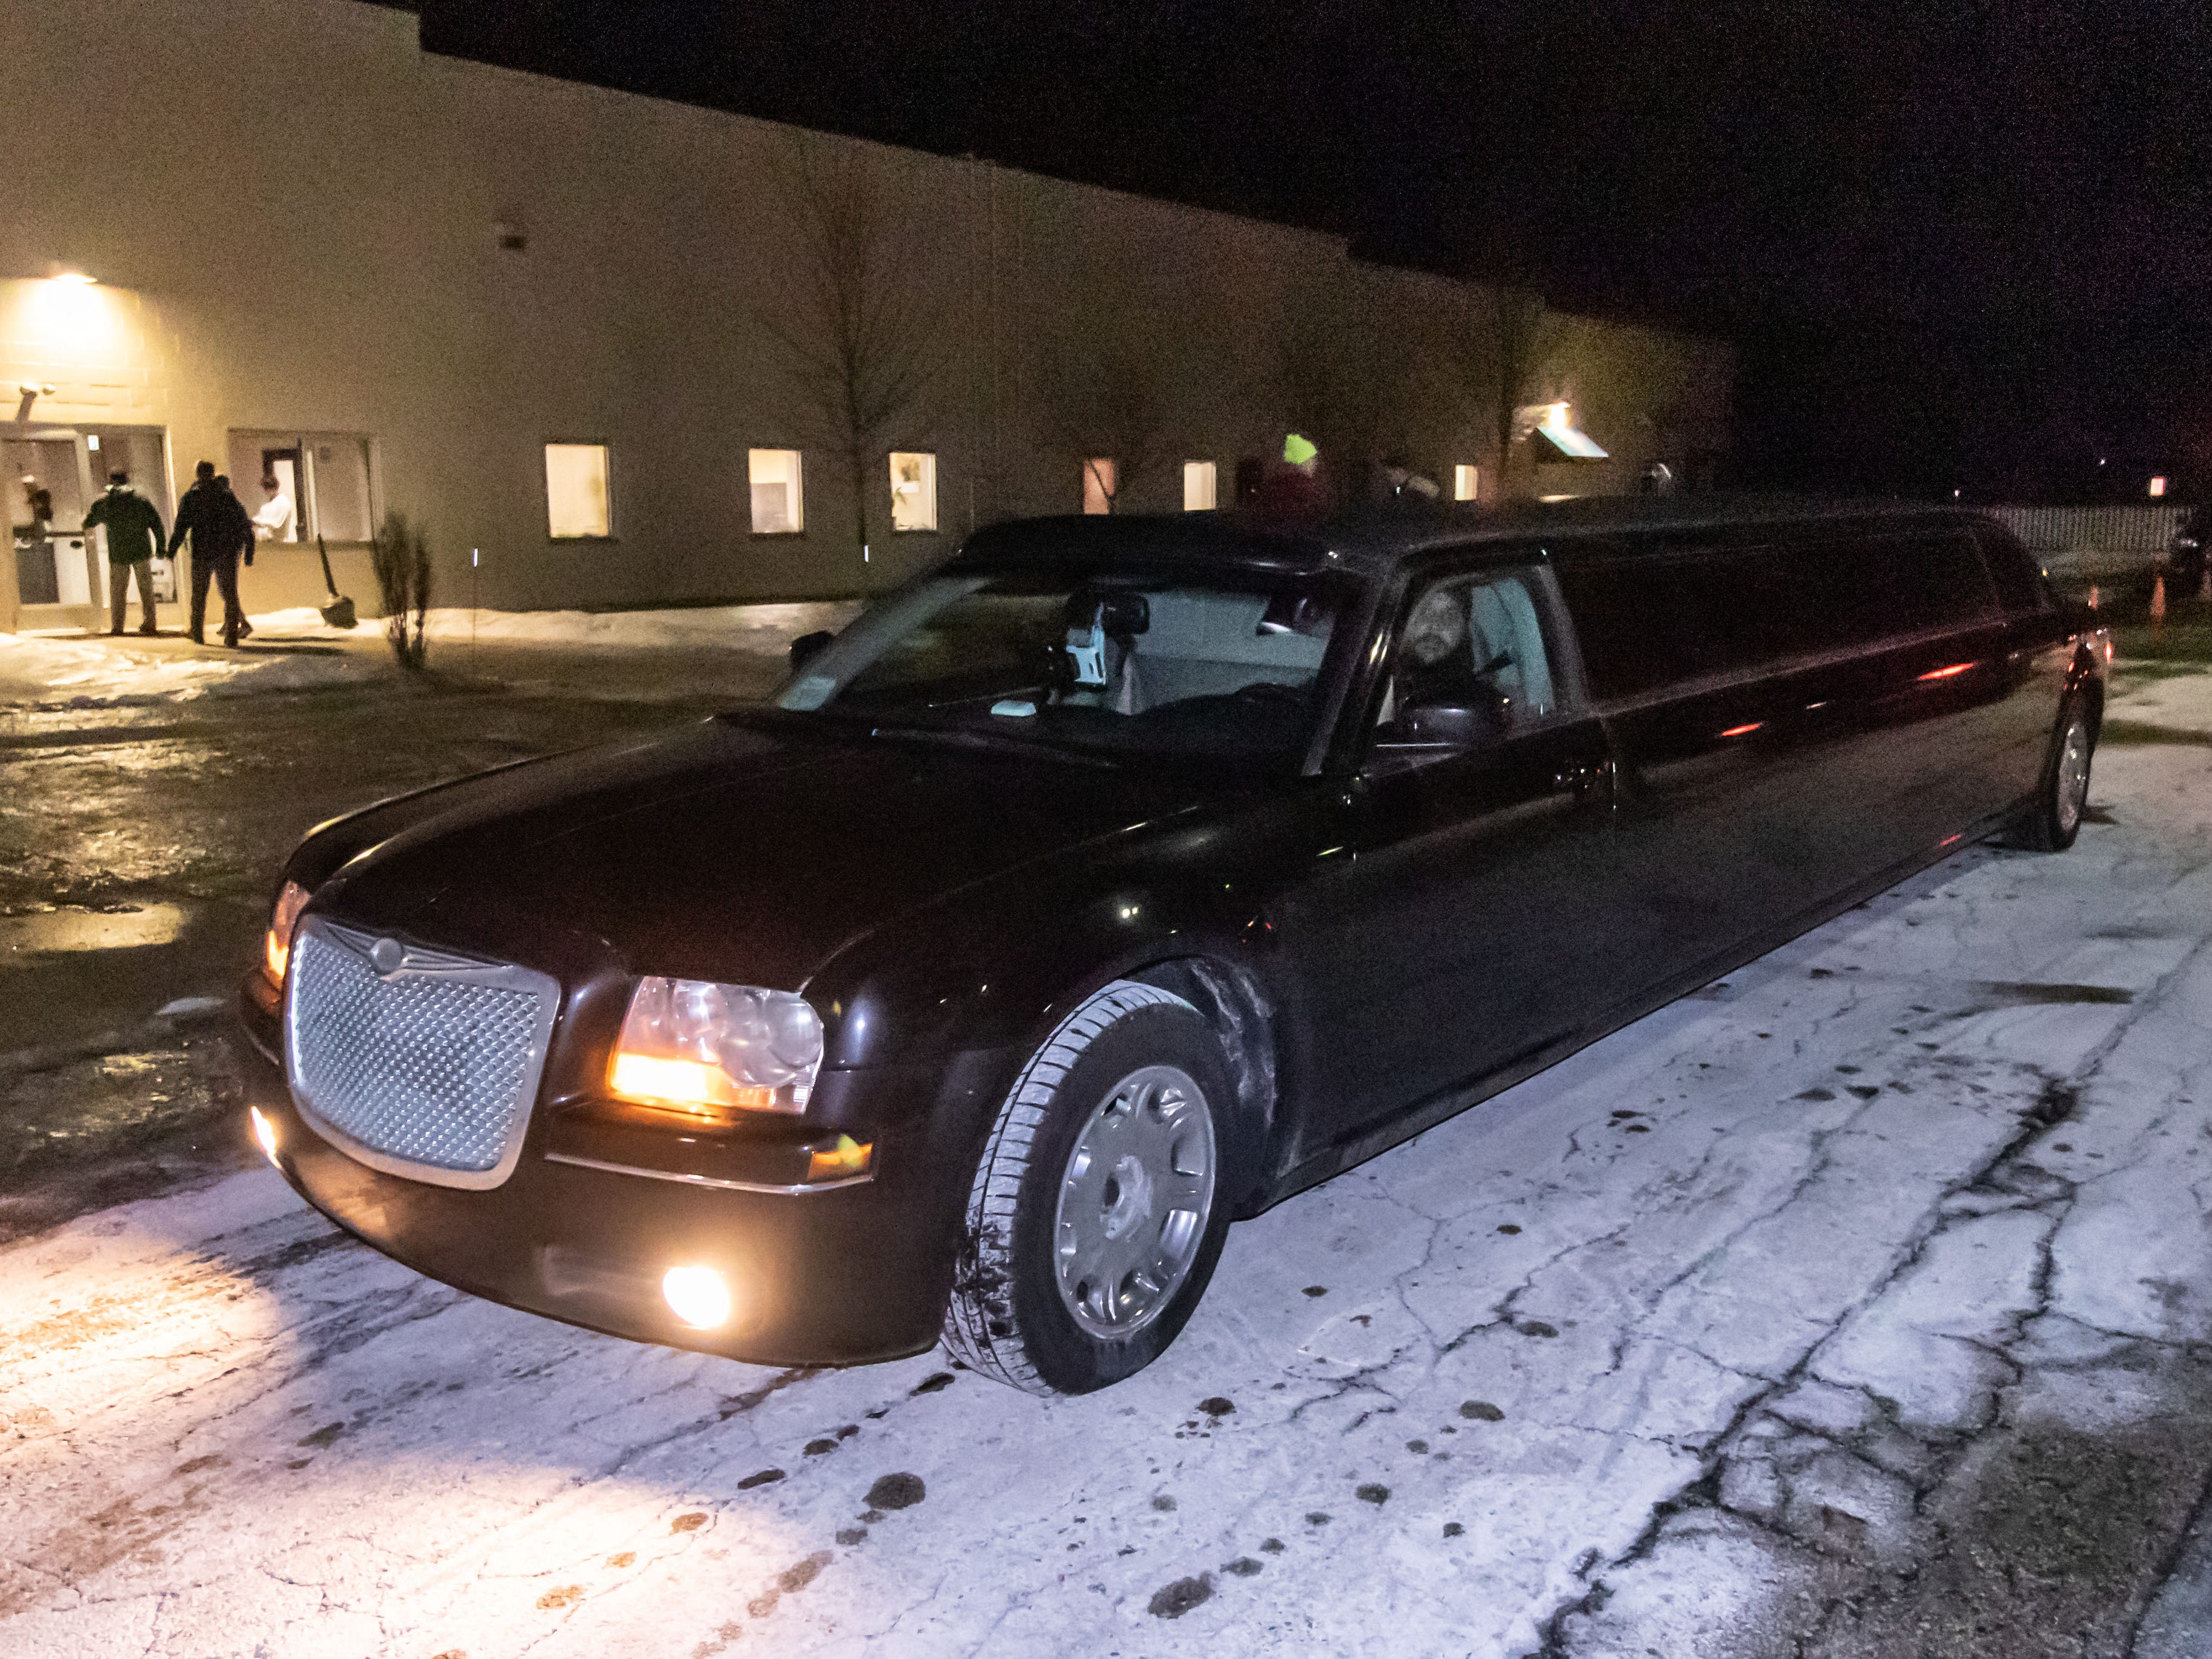 Guests experience a limousine ride during the Night to Shine Prom hosted by Brooklife Church in Mukwonago on Friday, Feb. 8, 2019. Night to Shine is a unforgettable prom night experience for people with special needs sponsored by the Tim Tebow Foundation. The event is hosted by local churches in all 50 states across the globe all on one night.